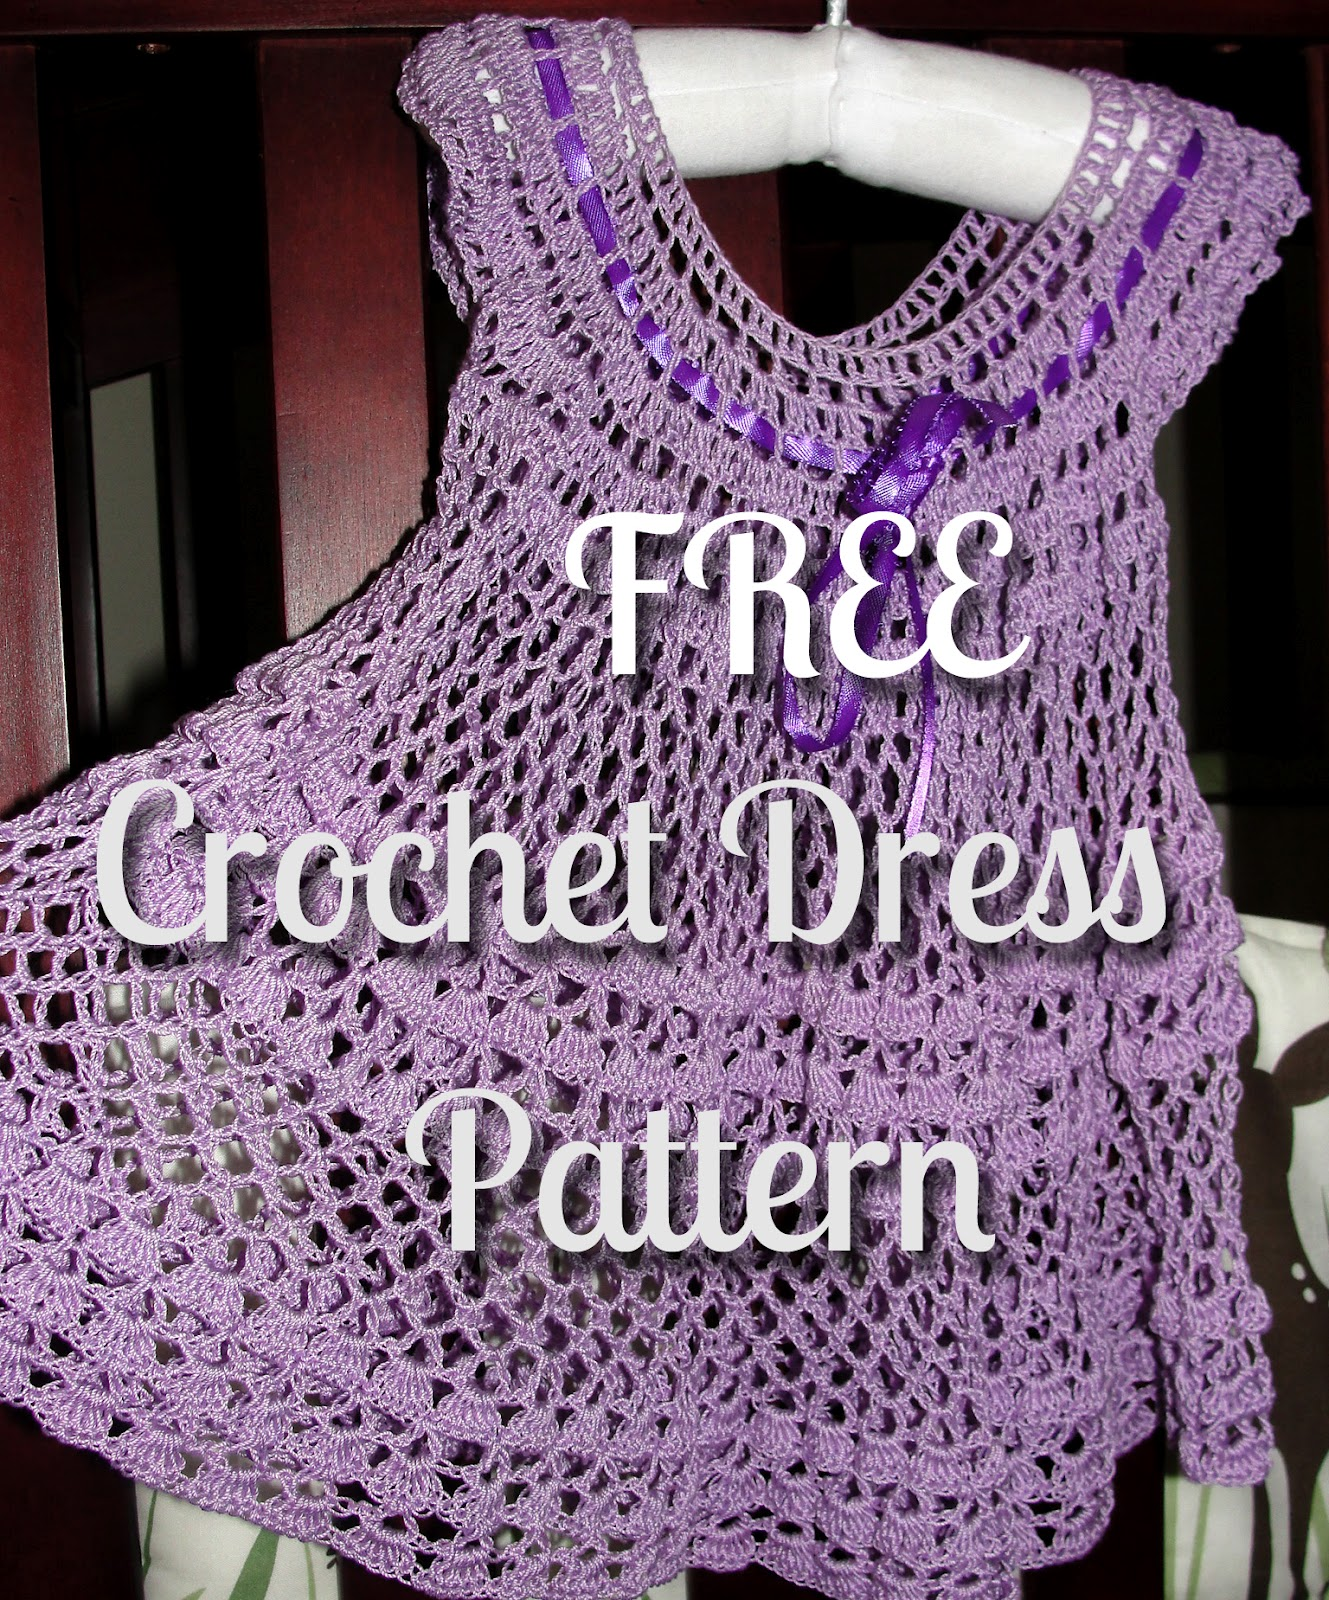 Japanese Crochet Baby Dress Pattern : Free Crochet Baby Dress Patterns submited images.